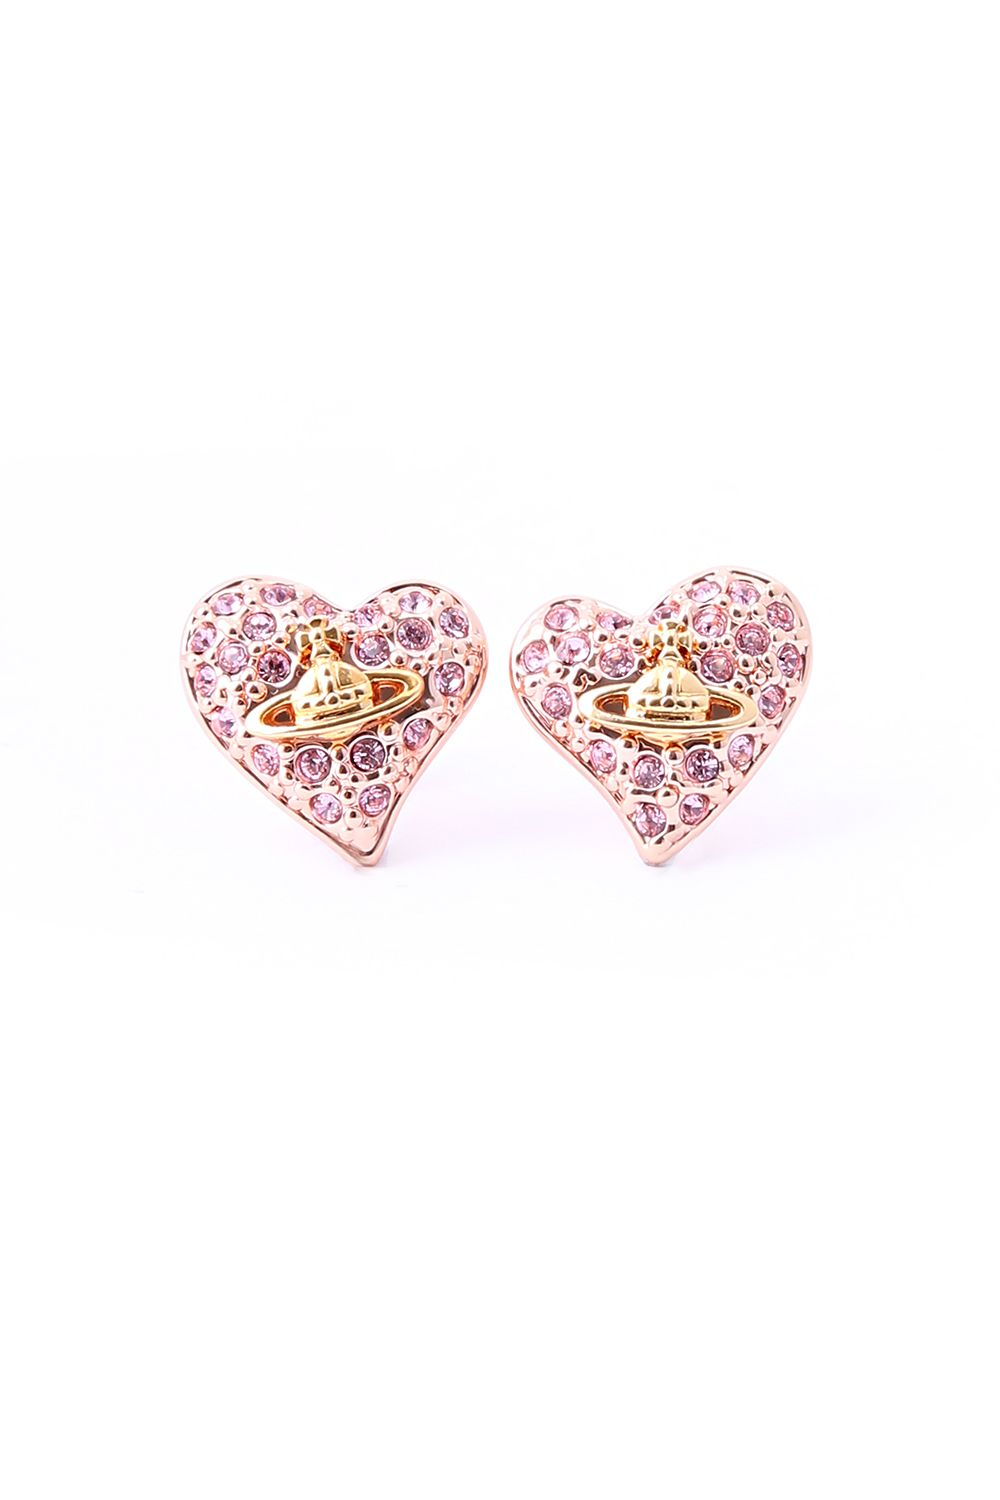 de5d8305b vivienne westwood tiny diamante heart stud earring - light rose http://www.